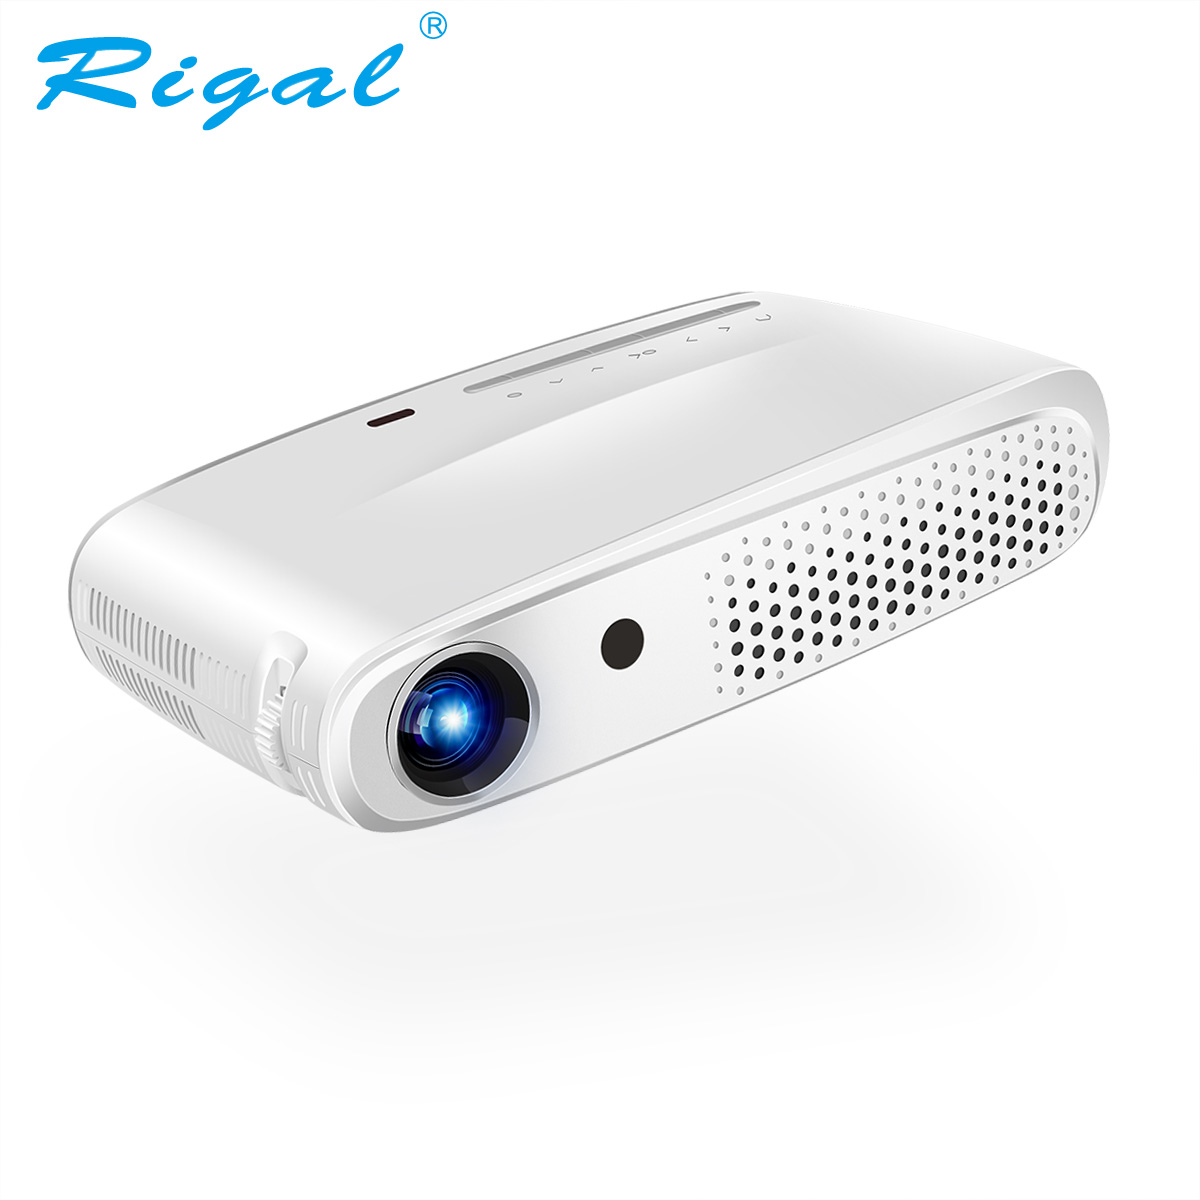 Rigal RD602 DLP Mini 3D Projector 600ANSI Lumens Android WiFi Projector Active Shutter 3D Full HD 1080P Business Home LED Beamer цены